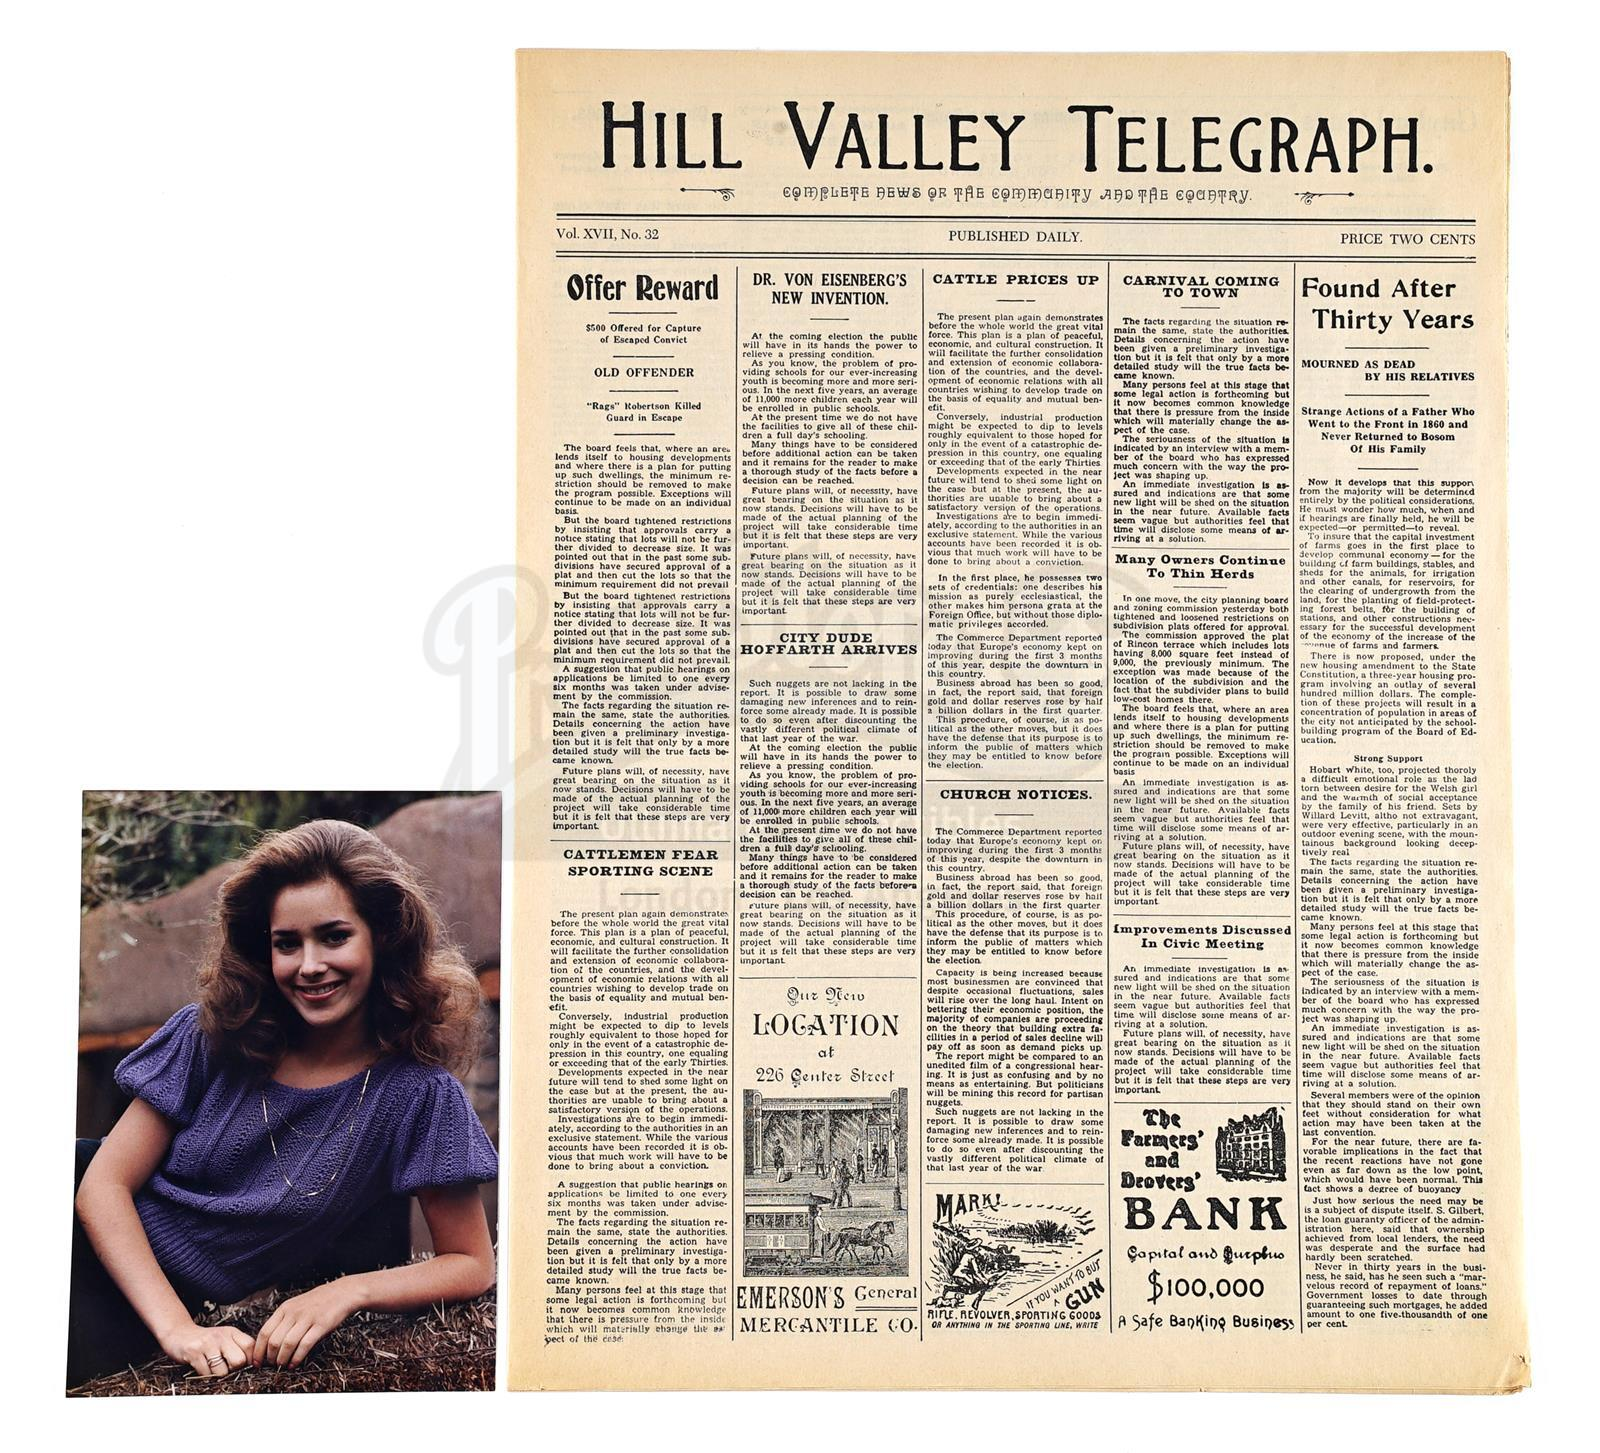 Lot # 493: BACK TO THE FUTURE PART III - Hill Valley Telegraph Newspaper and Claudia Wells Productio